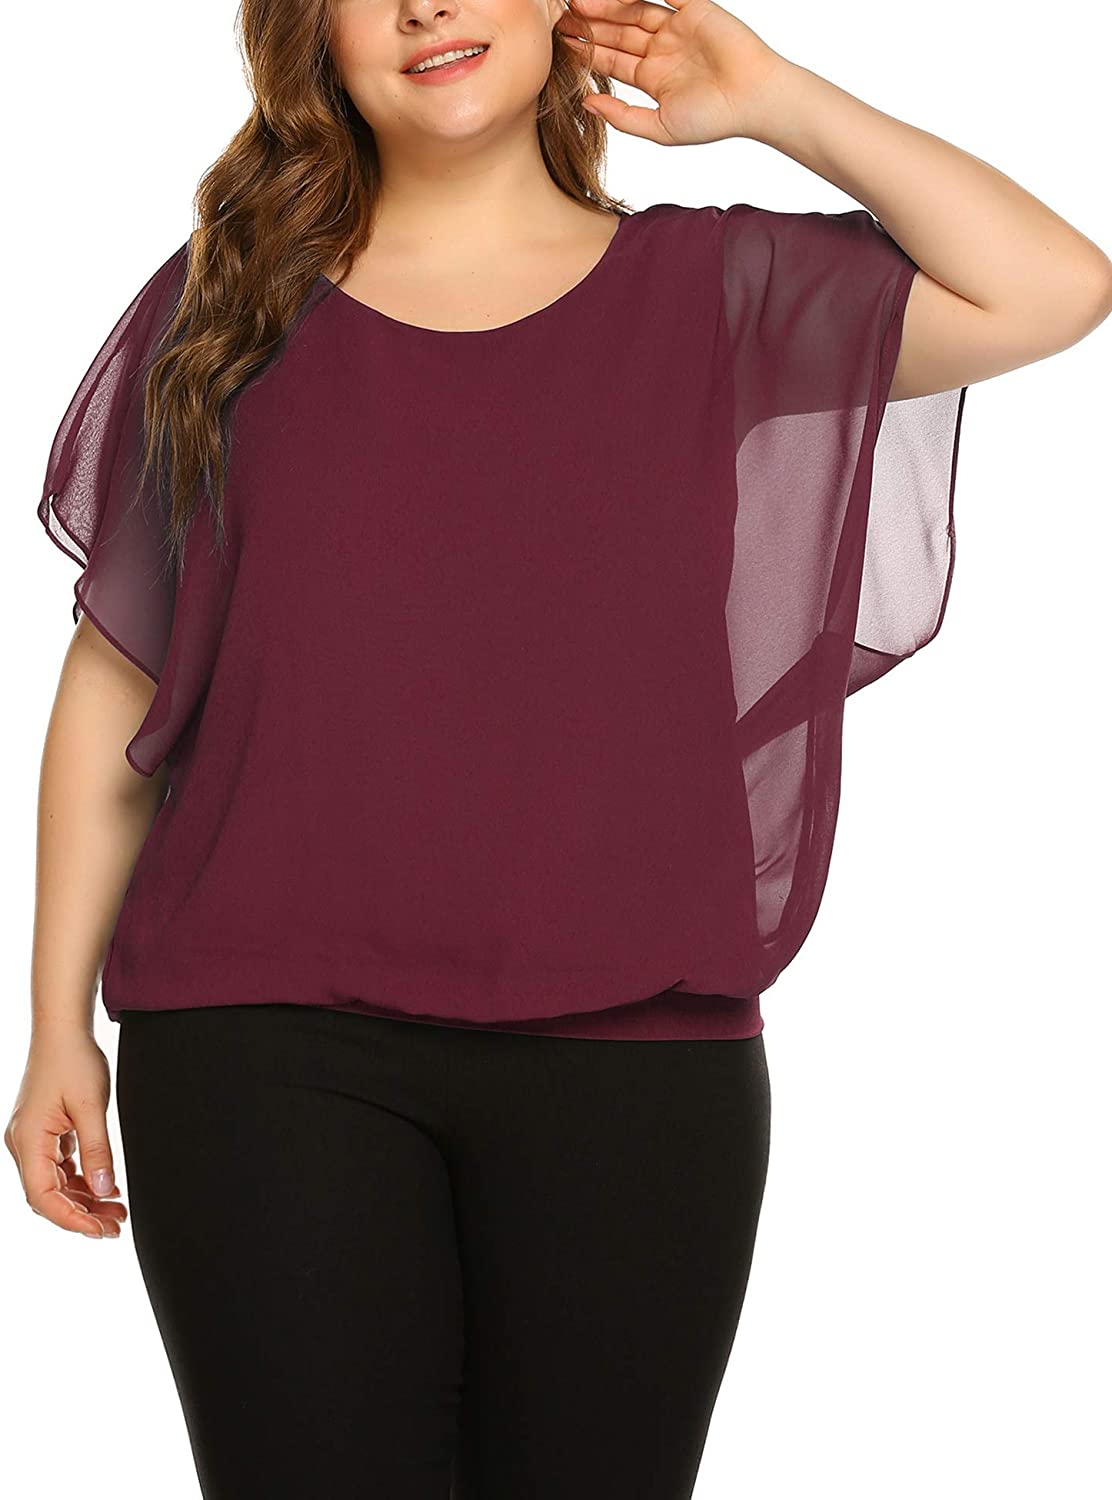 Plus Size Mix & Match Tops & Bottoms 09